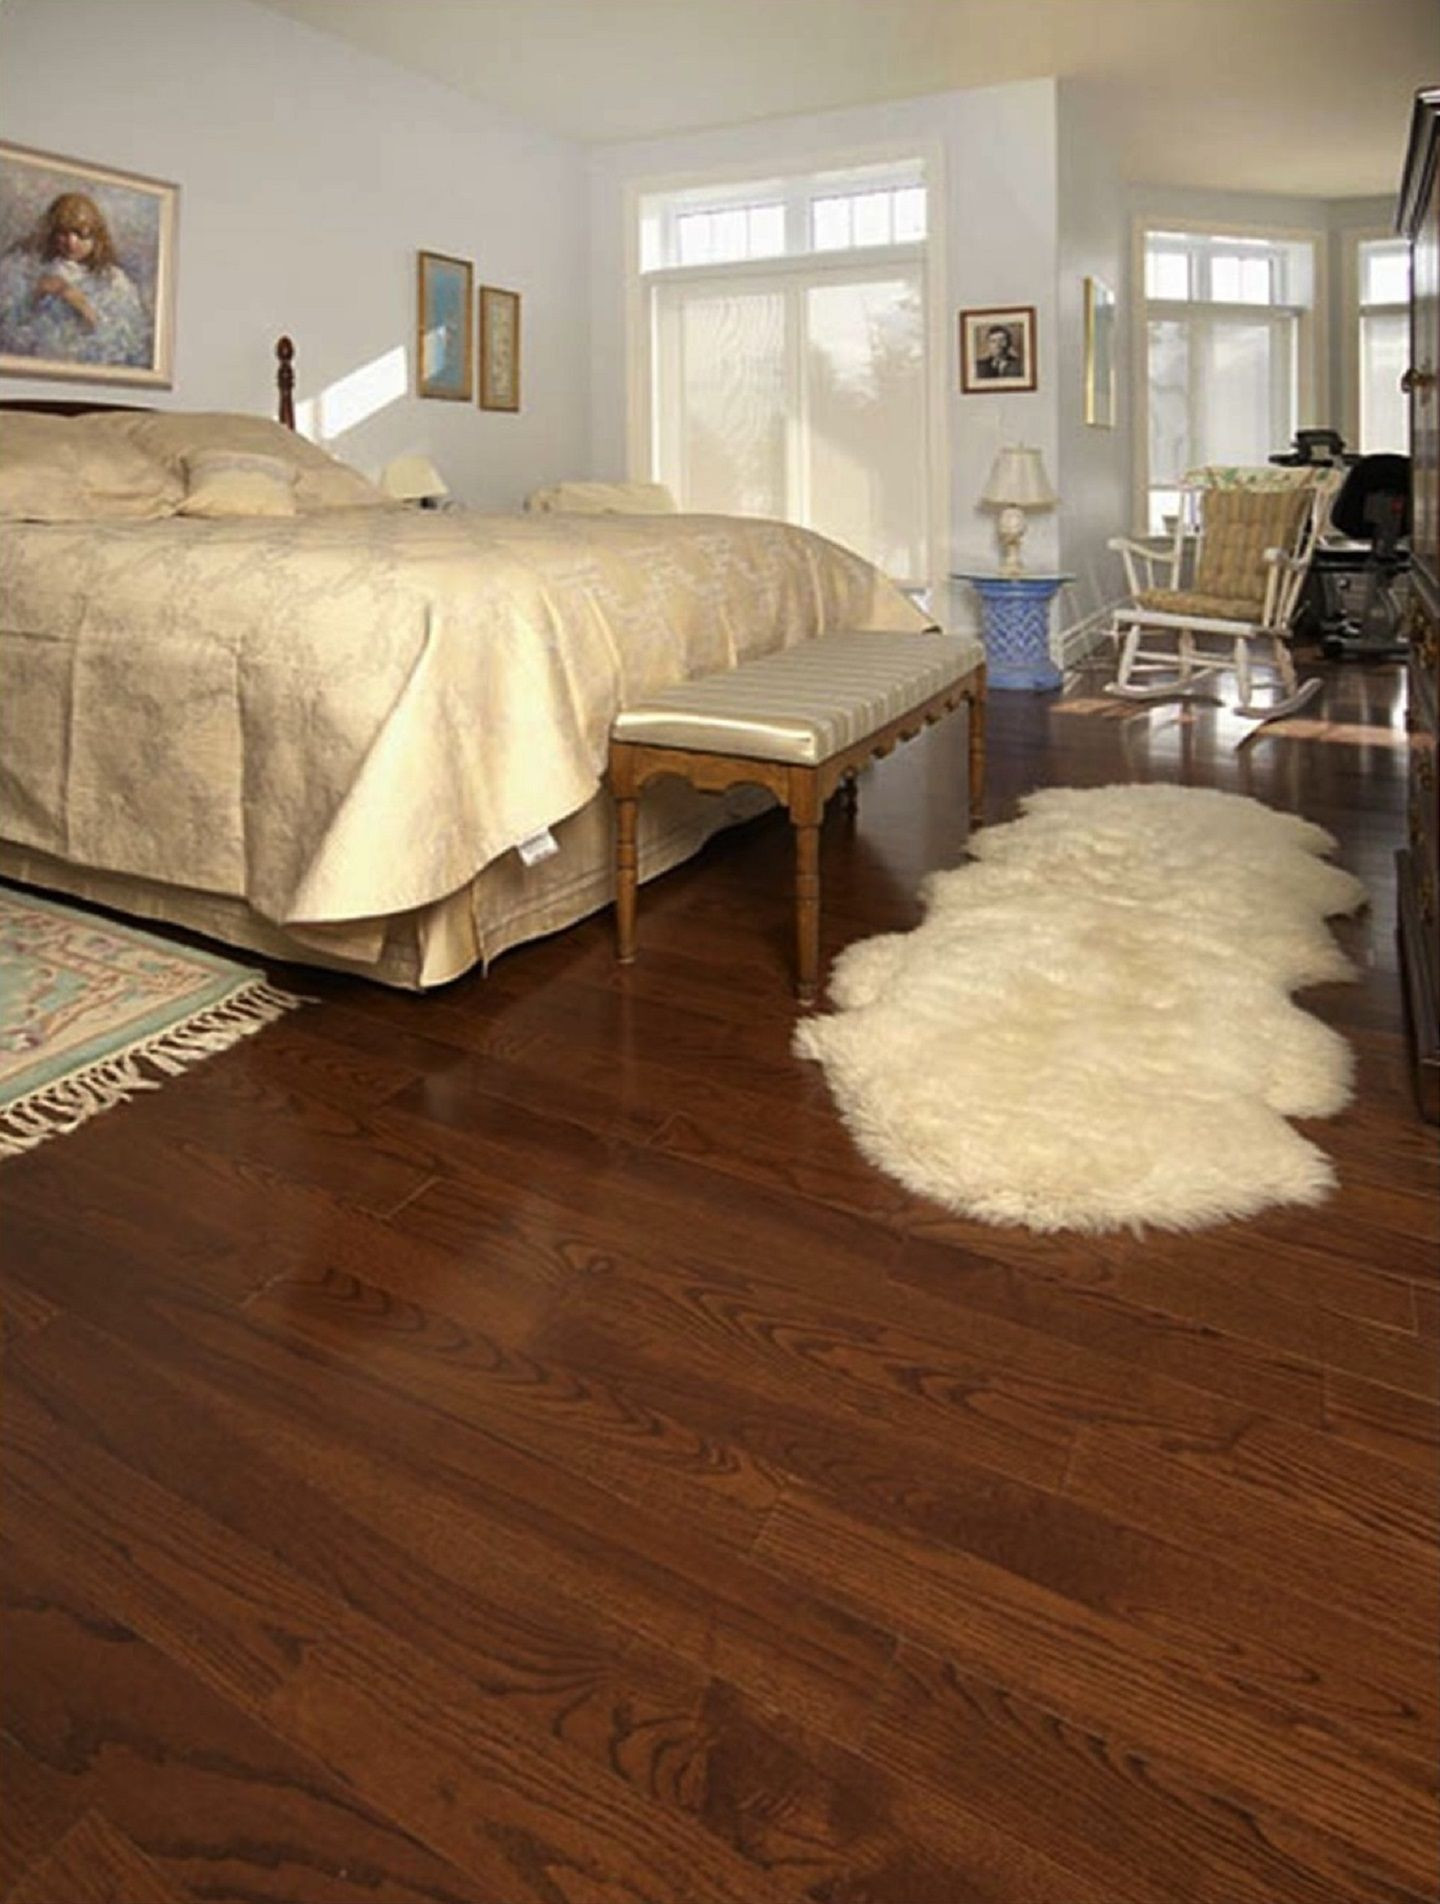 tongue and groove hardwood flooring of ash brandon gaylord hardwood flooring hardwood floors pinterest throughout ash brandon gaylord hardwood flooring